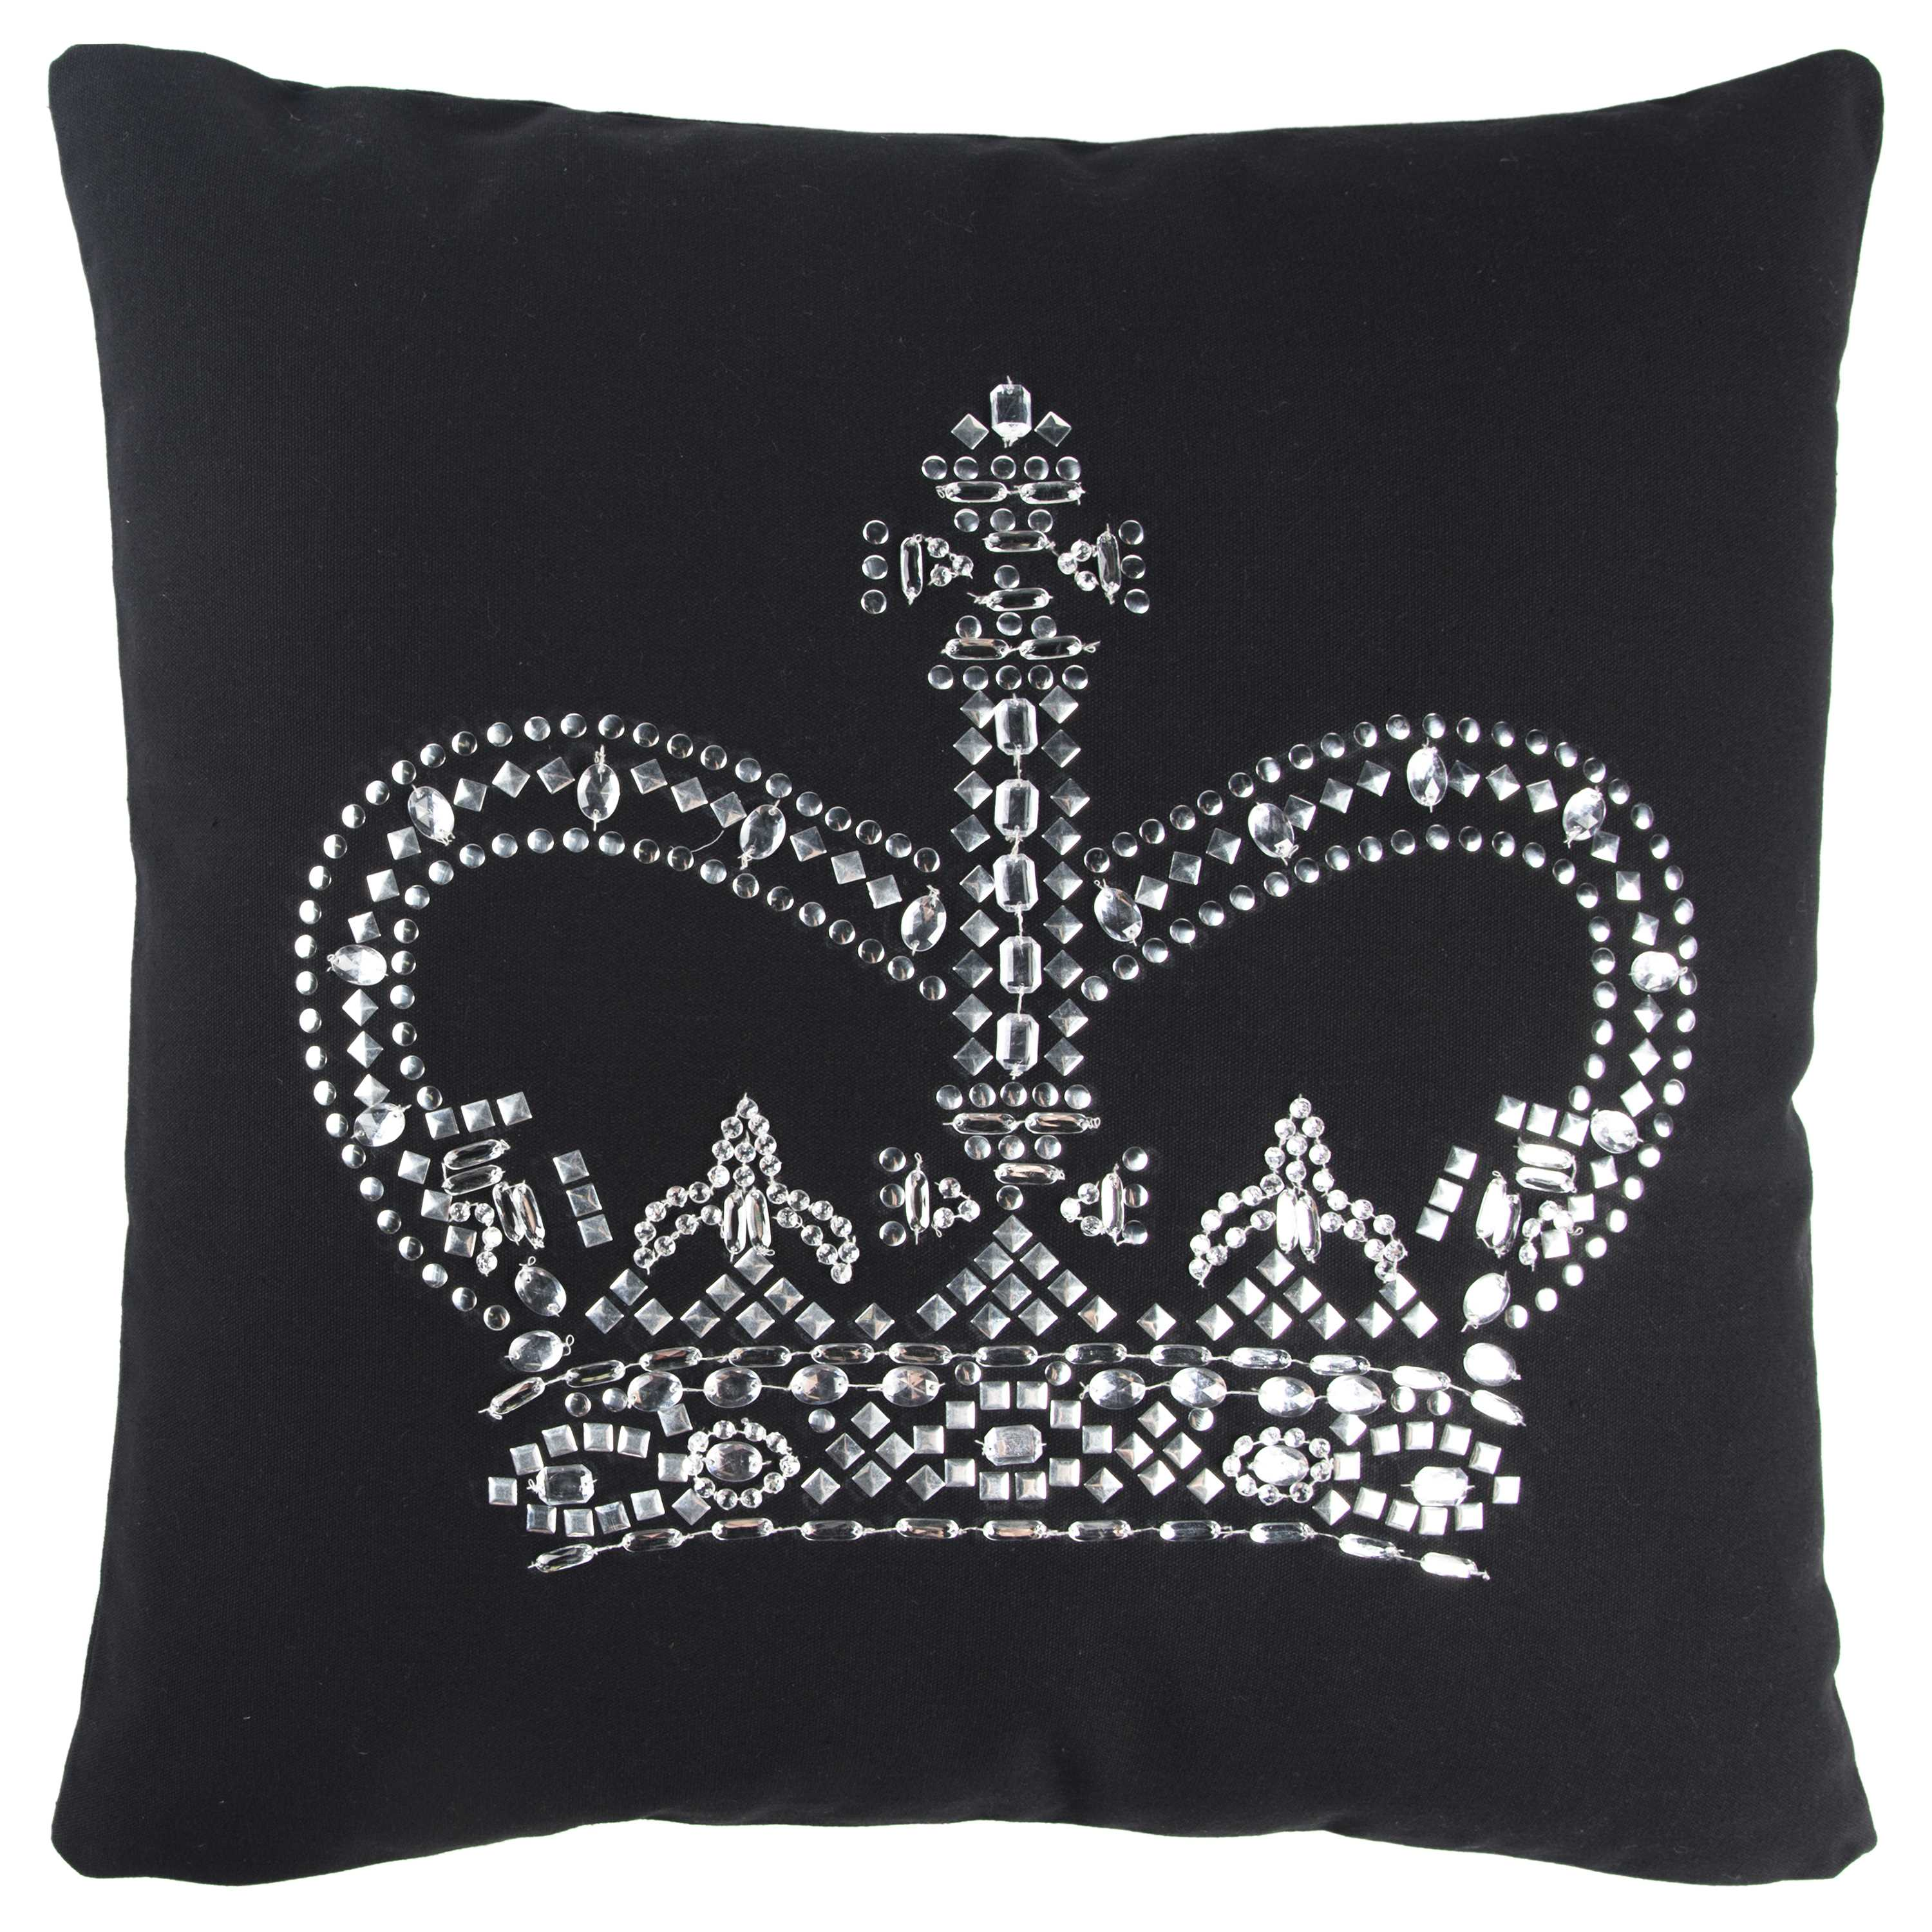 "Rizzy home T11067 20"" x 20"" black cotton canvas decorative filled pillow"